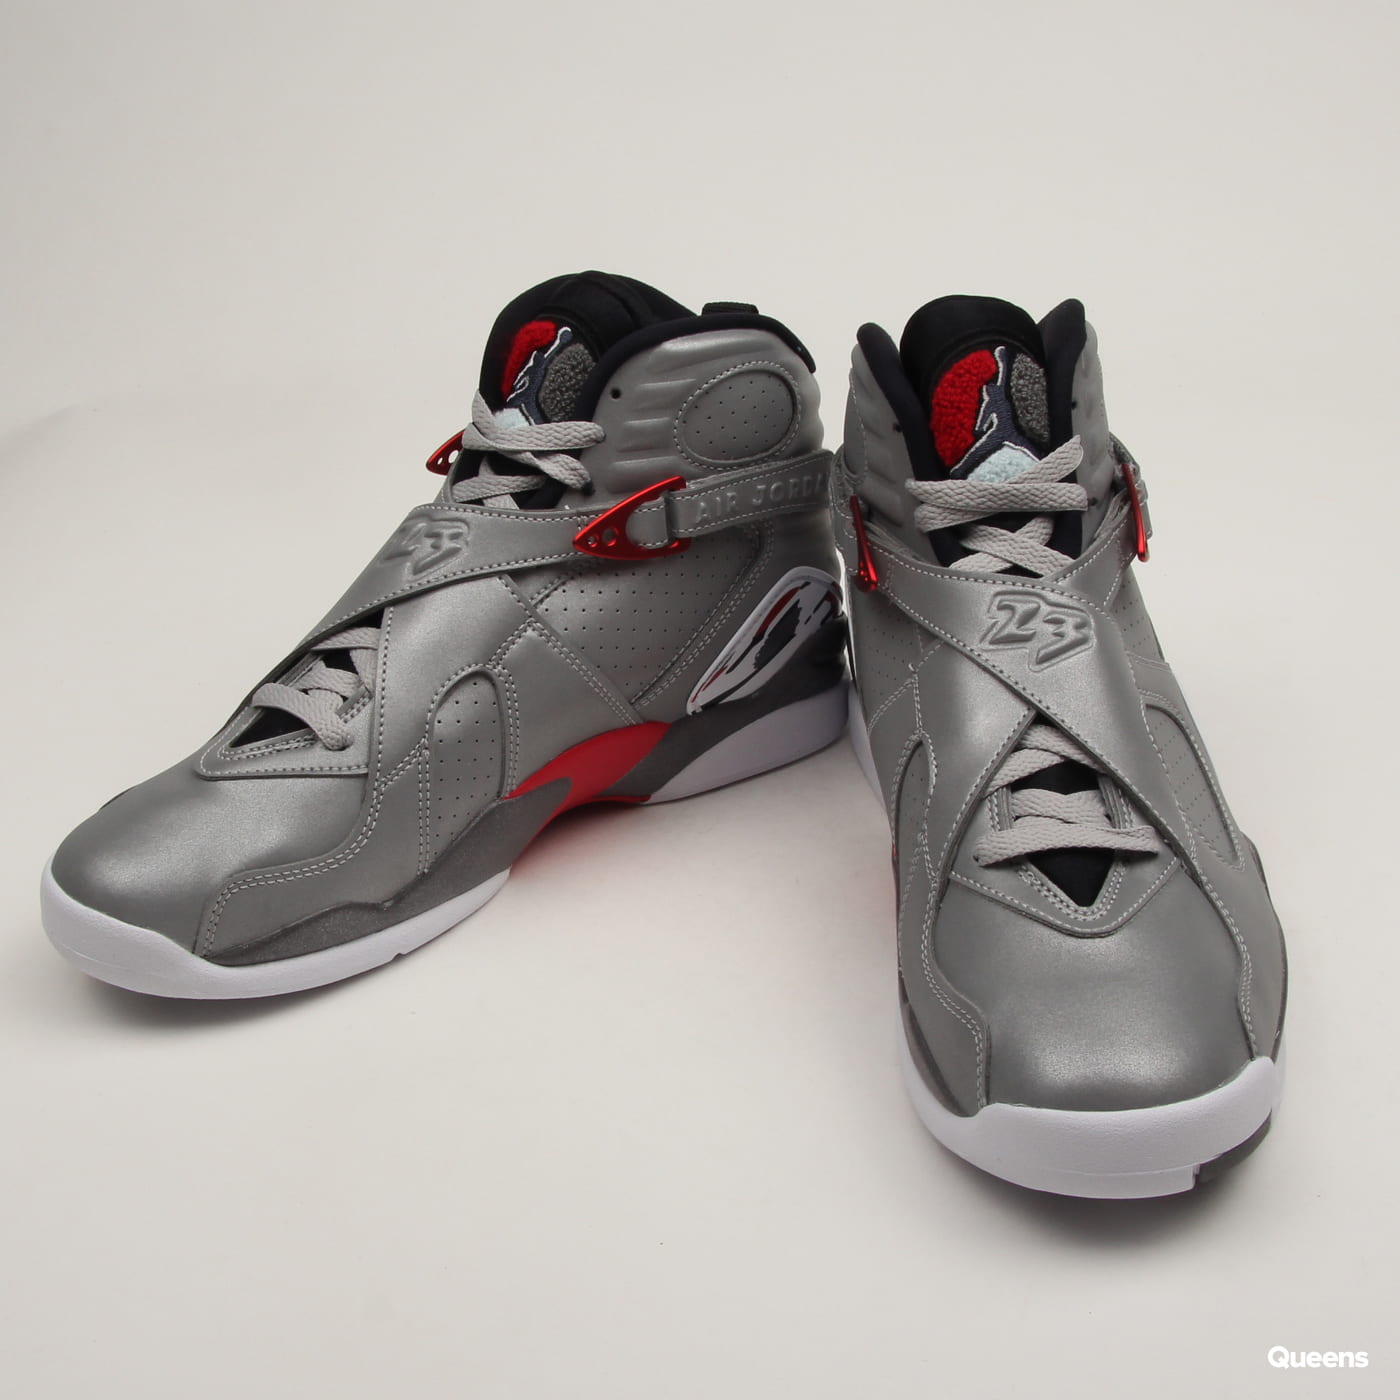 San Francisco a6a4c 7b0e8 Jordan Air Jordan 8 Retro SP reflect silver / hyper blue